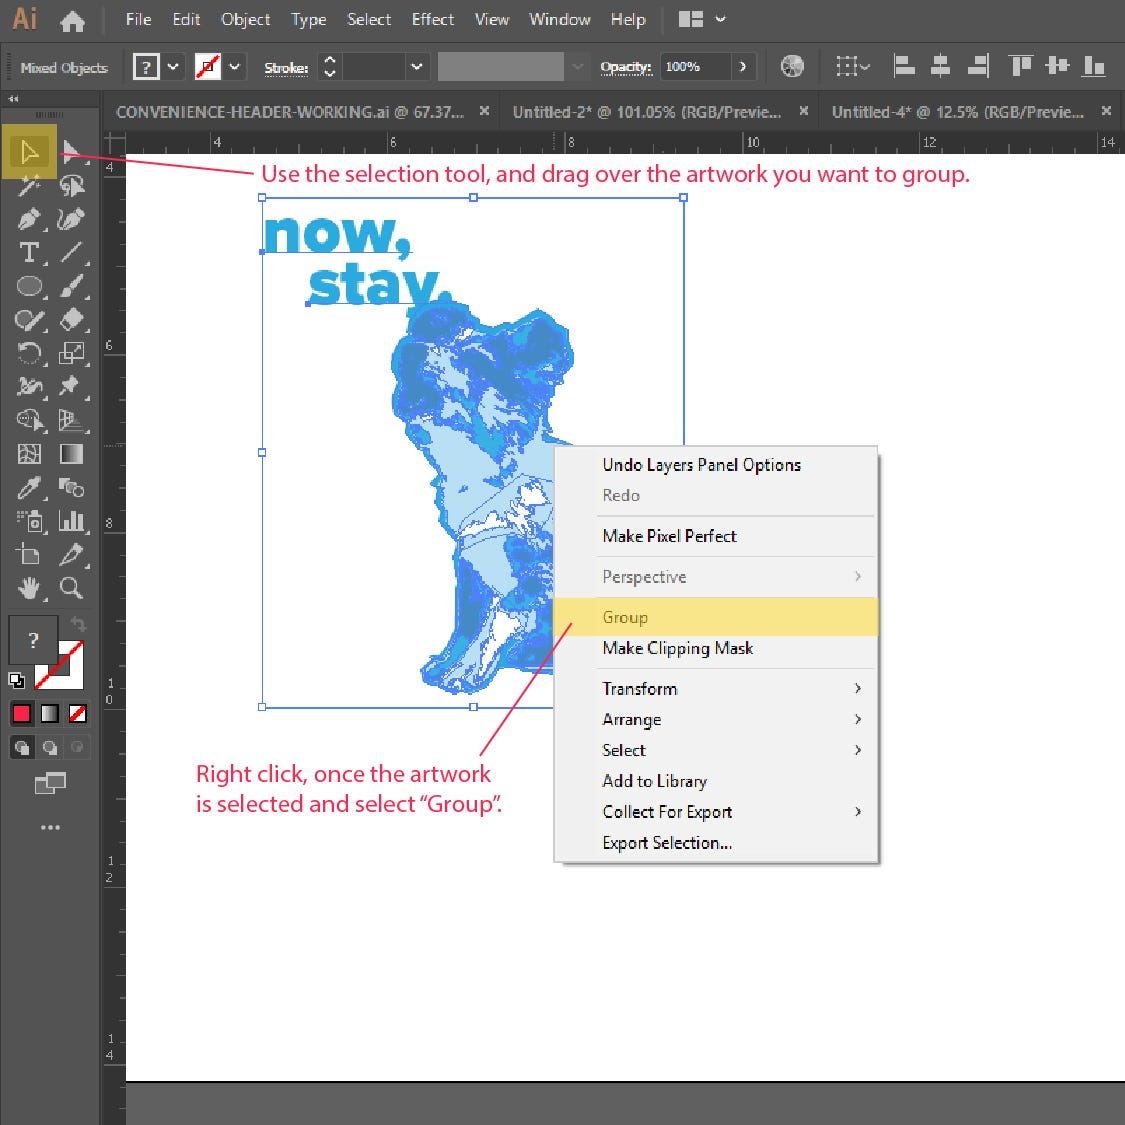 Step 2: How to Resize or Scale Object in Adobe Illustrator